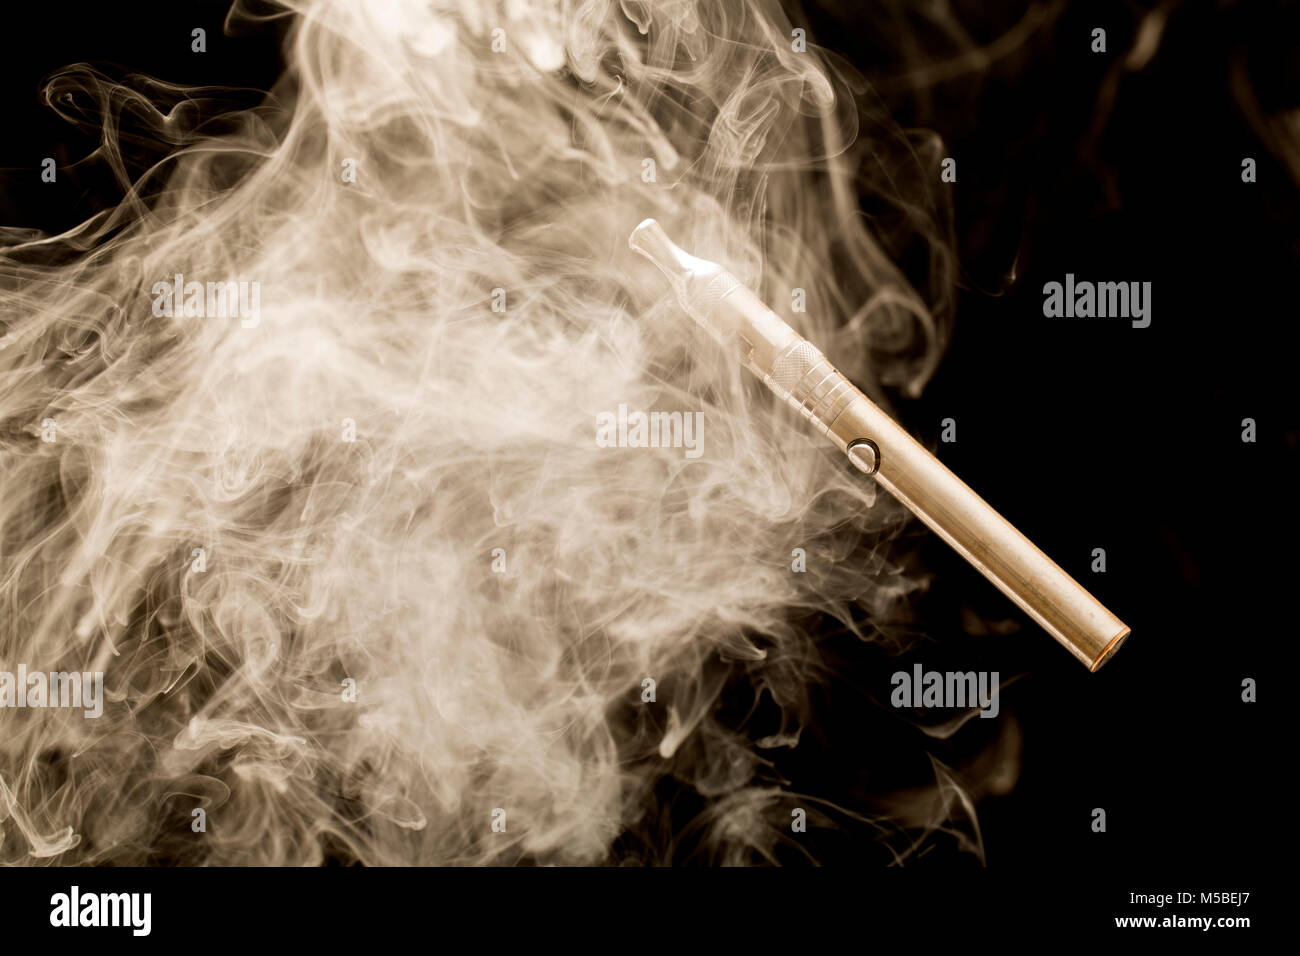 Electric cigarette or E cigarette surrounded by vapour from its E liquid. England UK GB. Photographed on a black - Stock Image